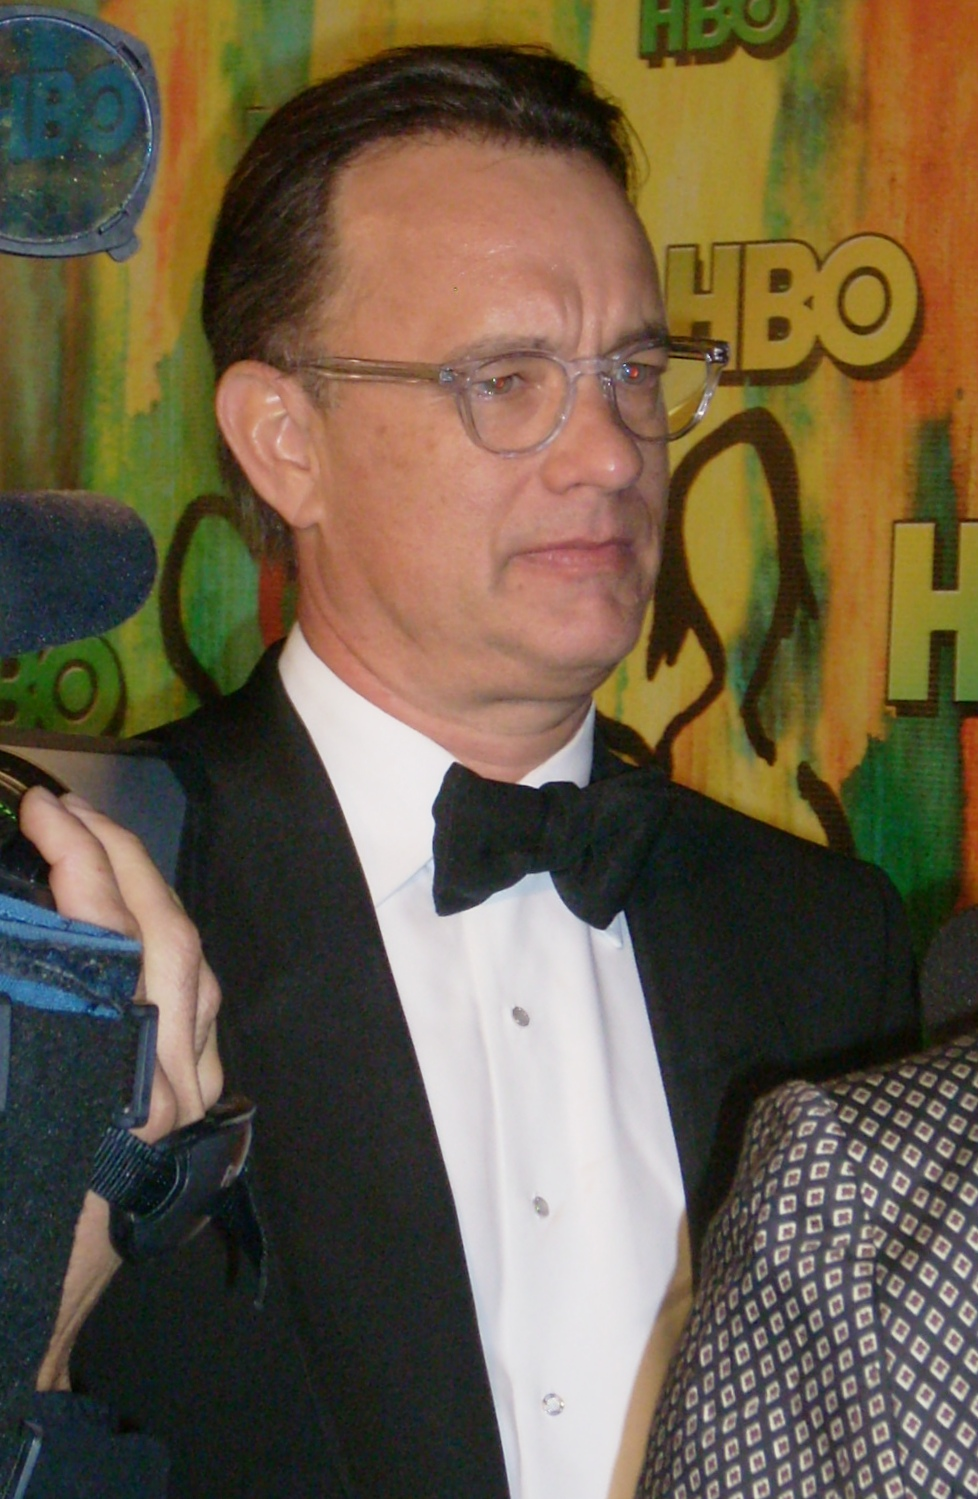 Tom Hanks Wikipedia The Free Encyclopedia